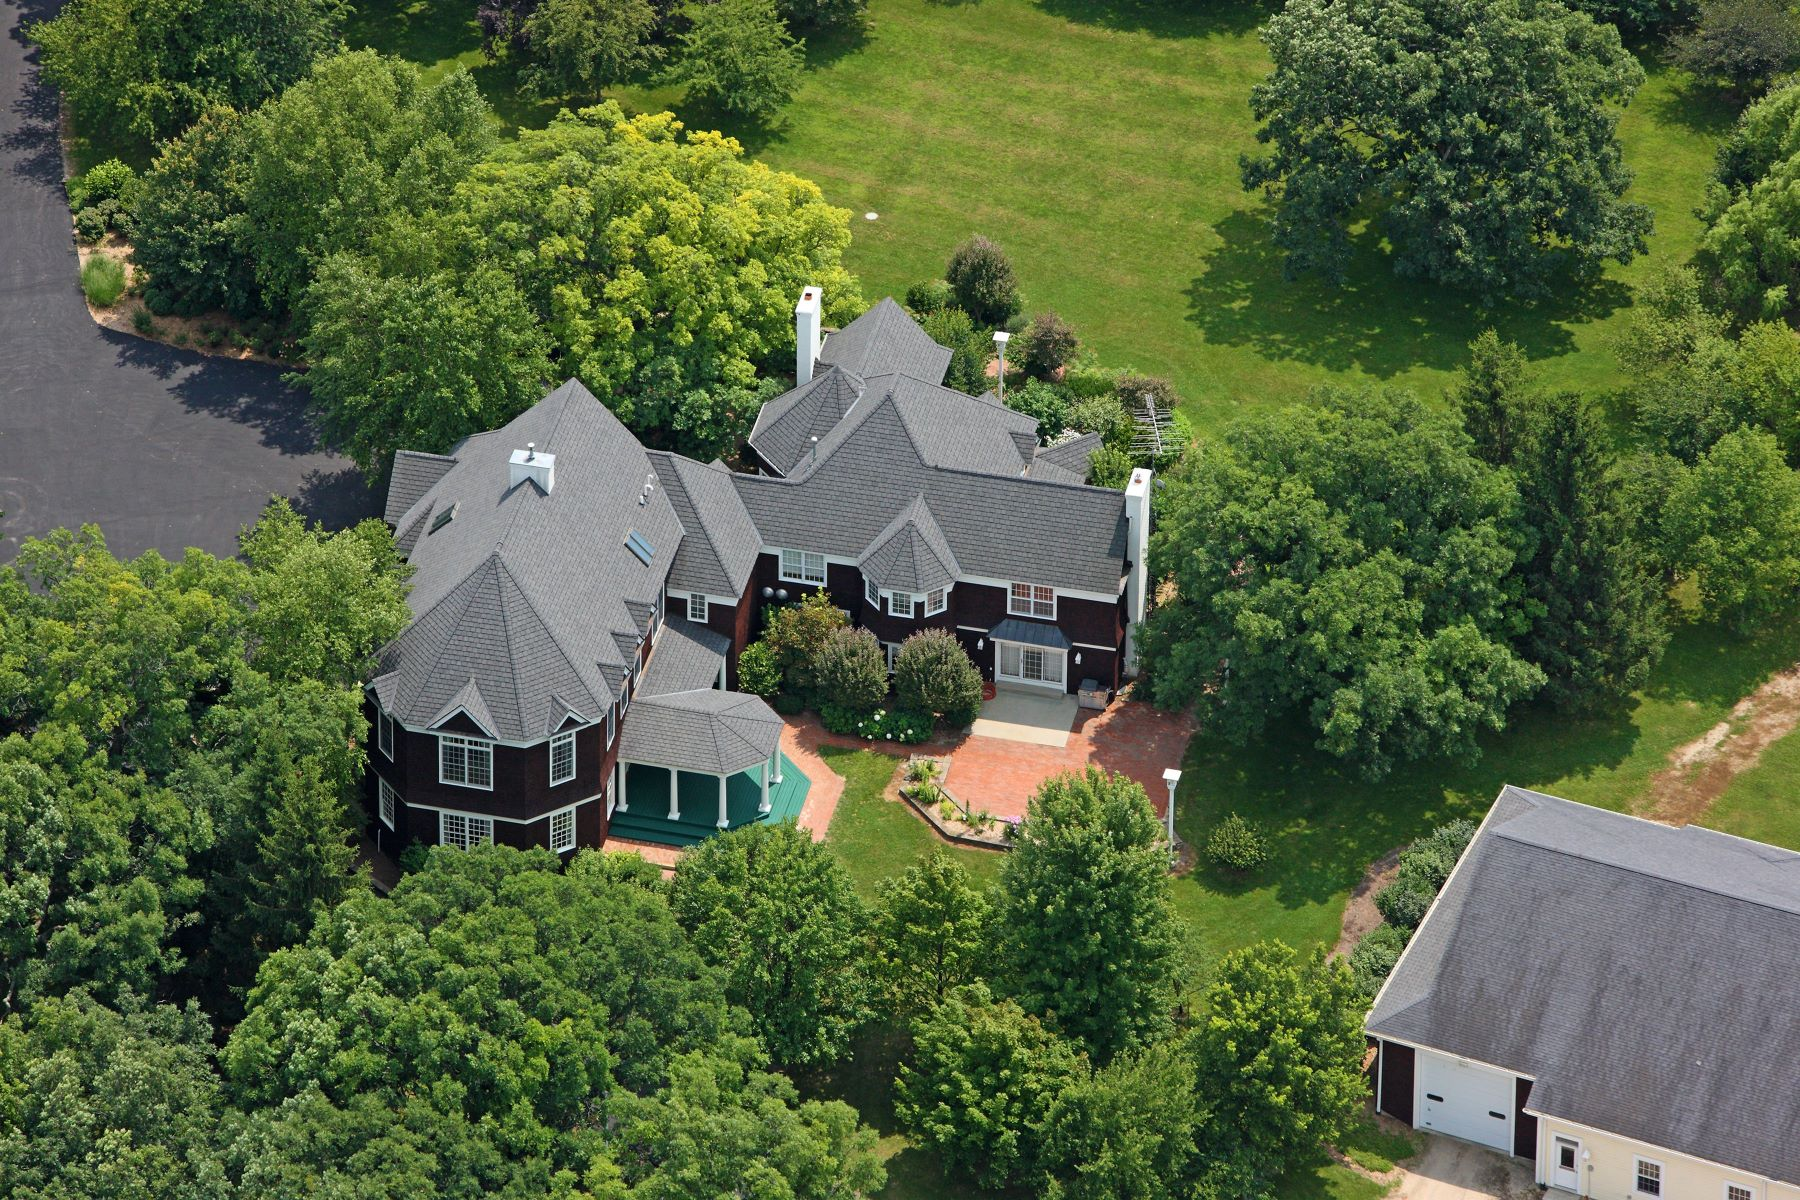 Single Family Homes for Sale at Stunning Cape Cod Estate 16556a County Line Road Capron, Illinois 61012 United States